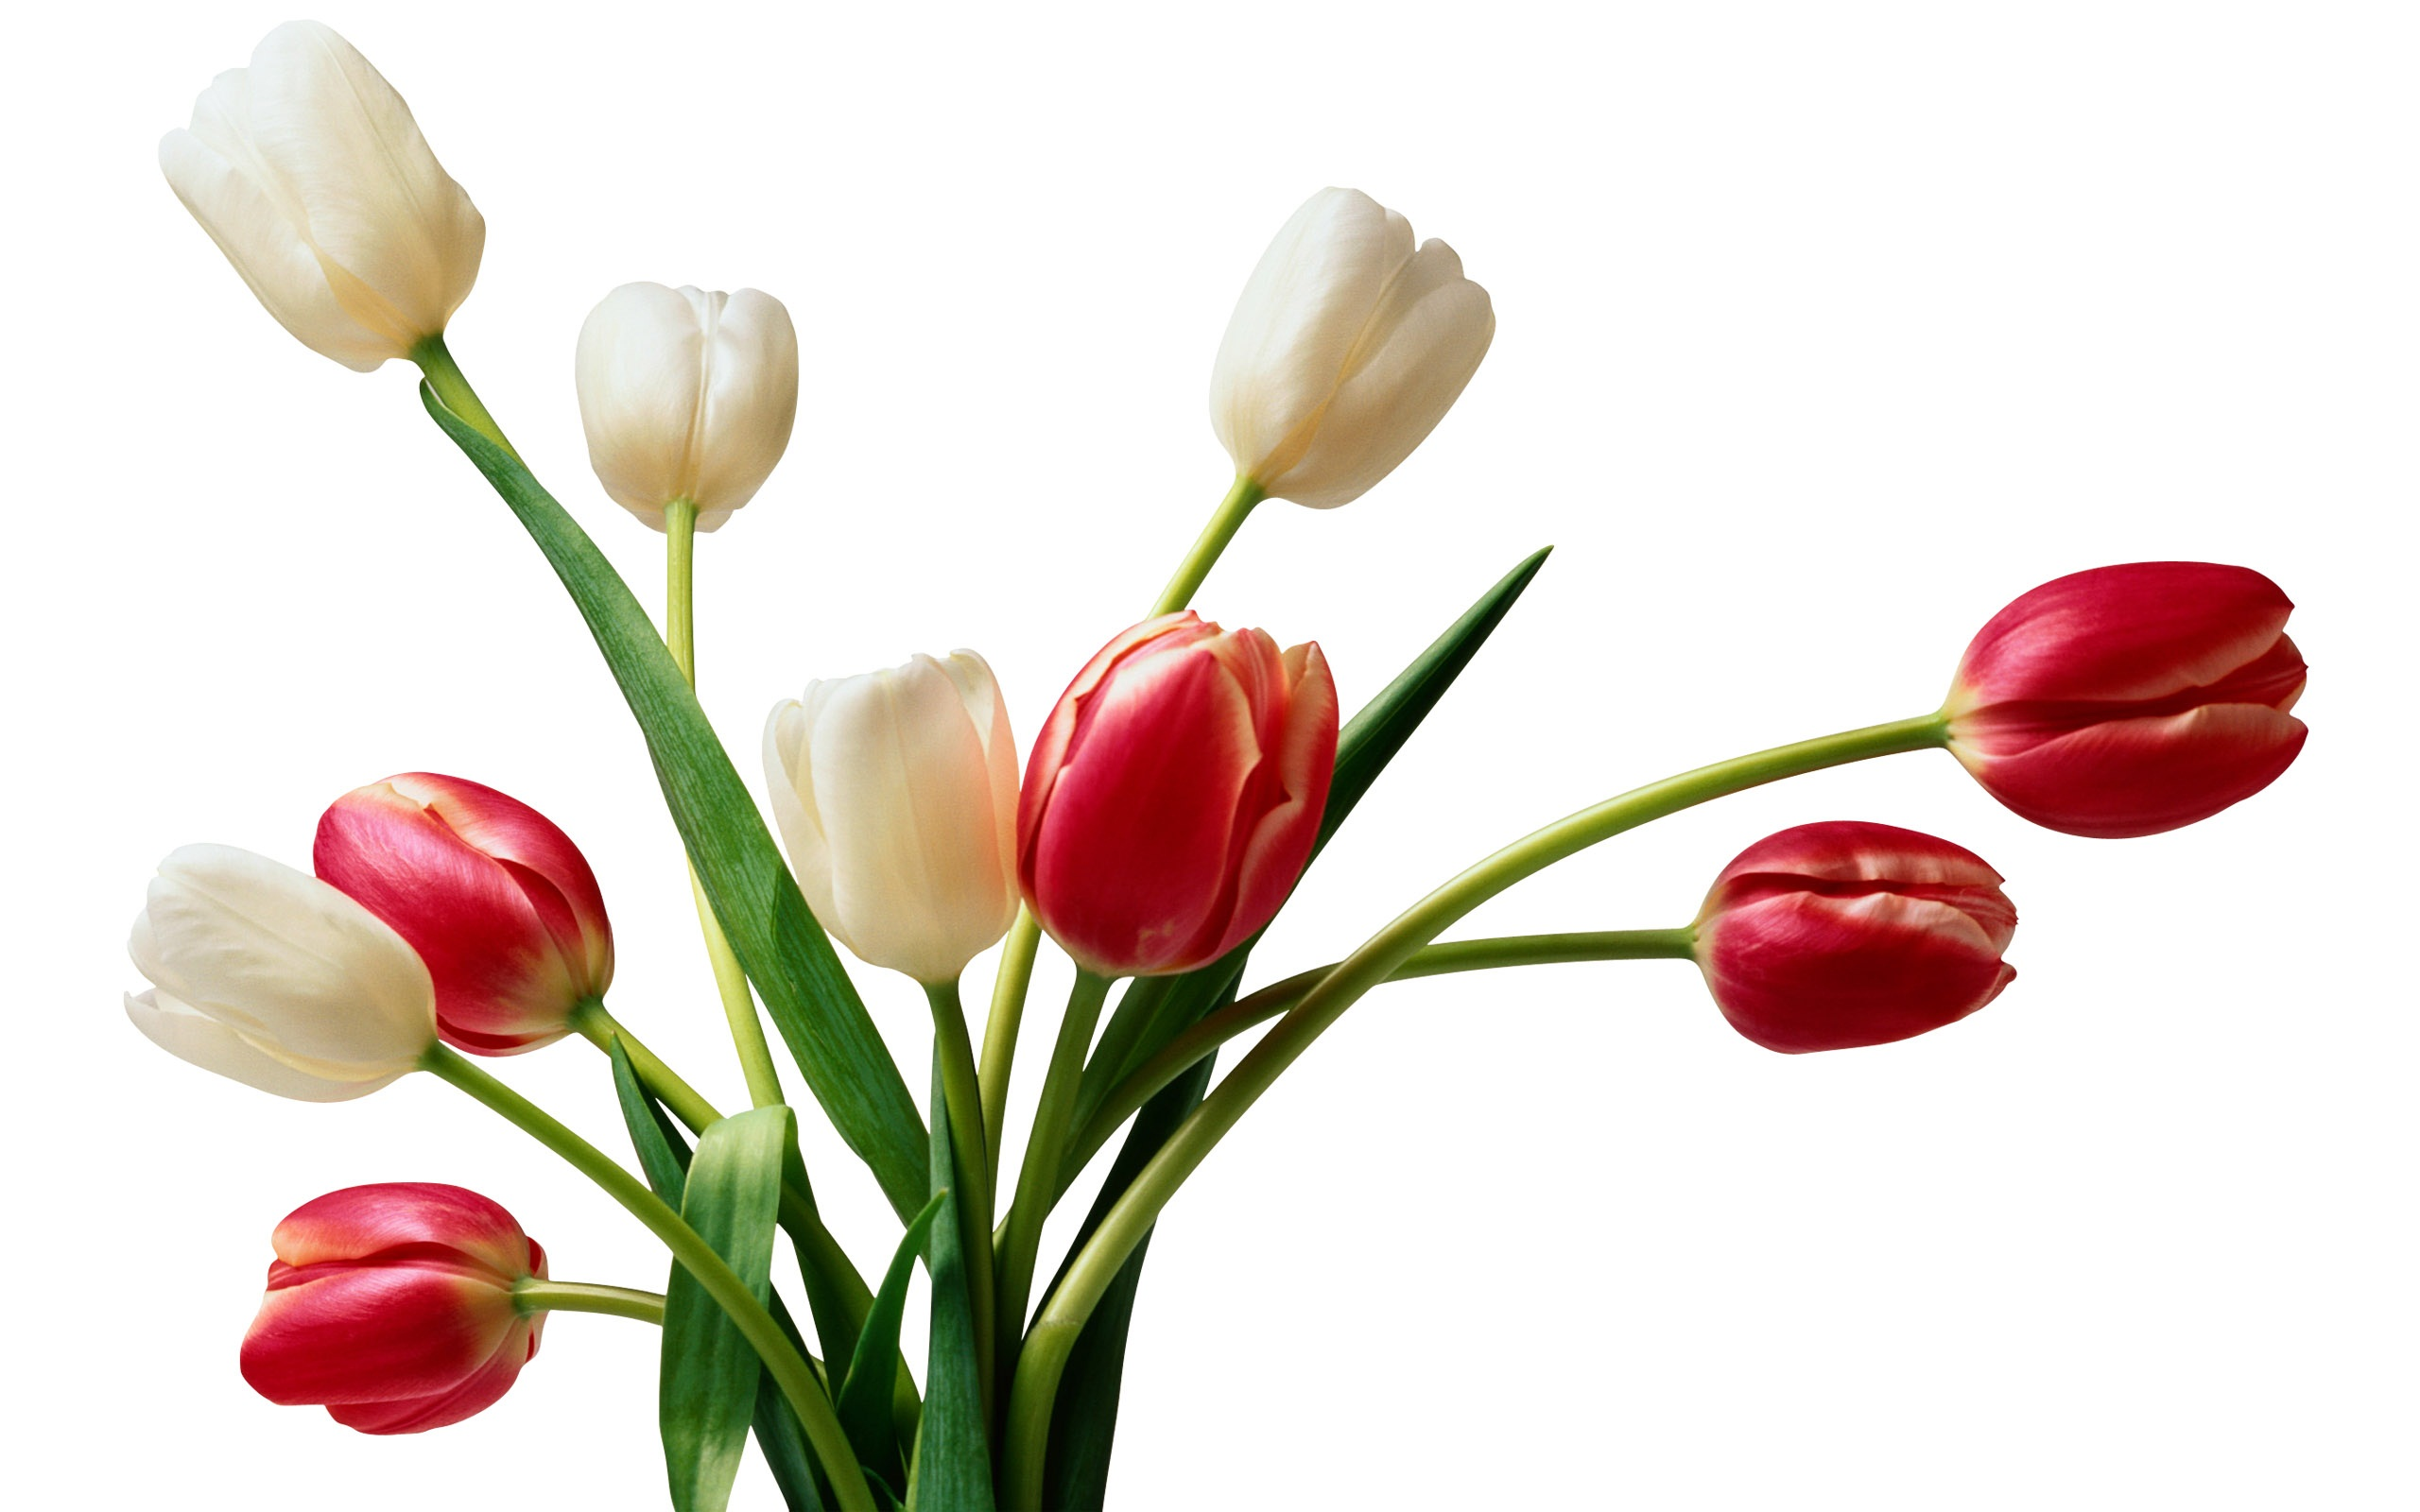 Flowers Wallpapers Hd Collection - Beautiful Flower Pictures Full Size - HD Wallpaper